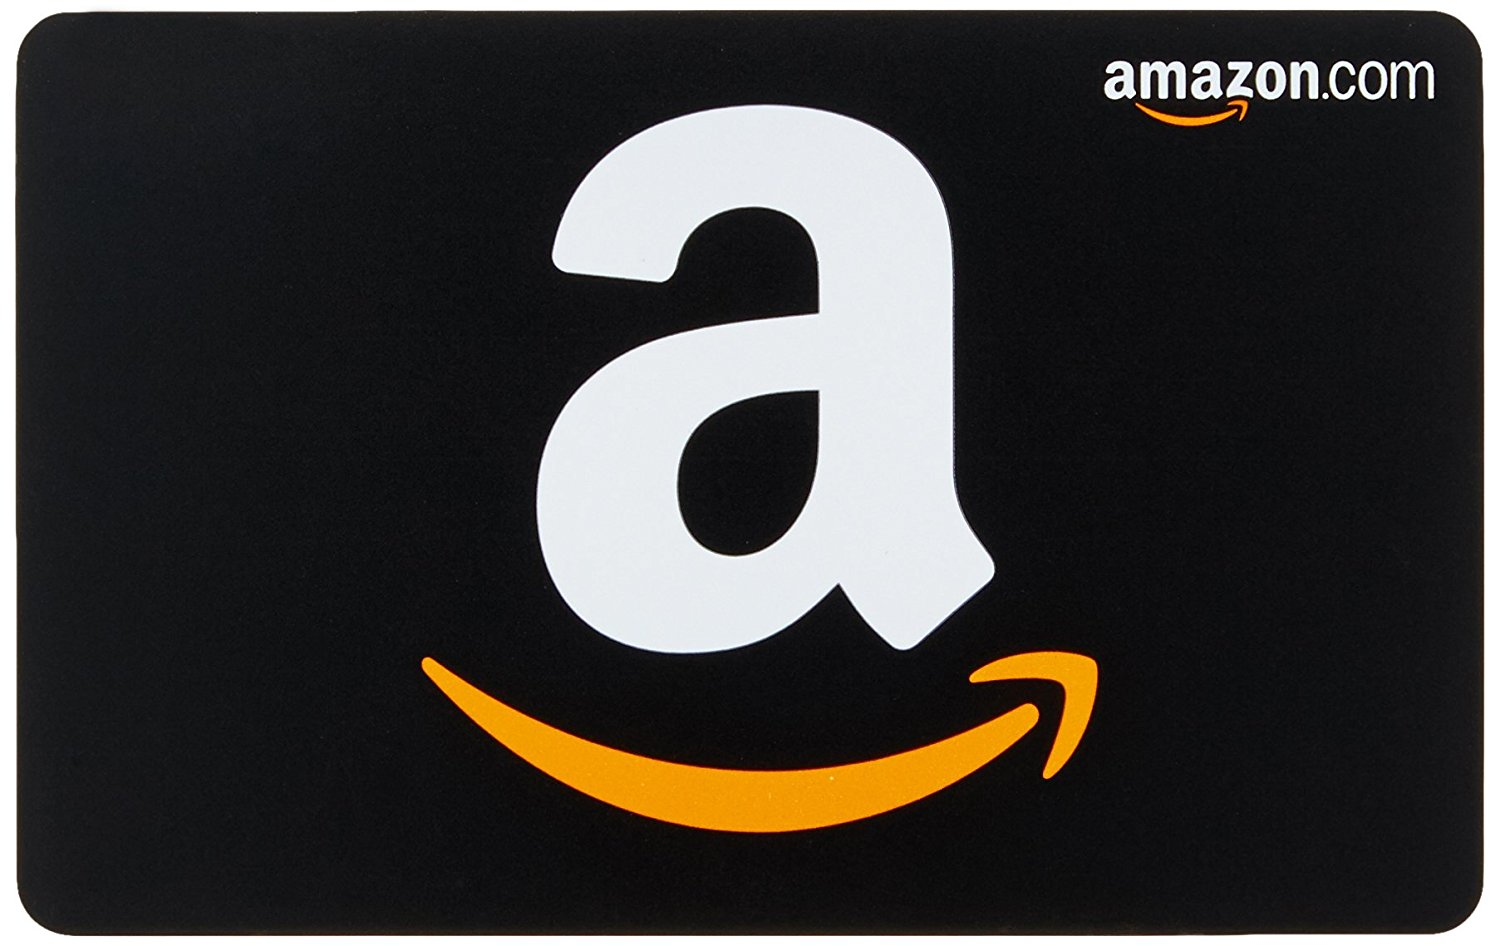 Amazon Prime Members Get A 25 Amazon Gift Card At A 20 Percent